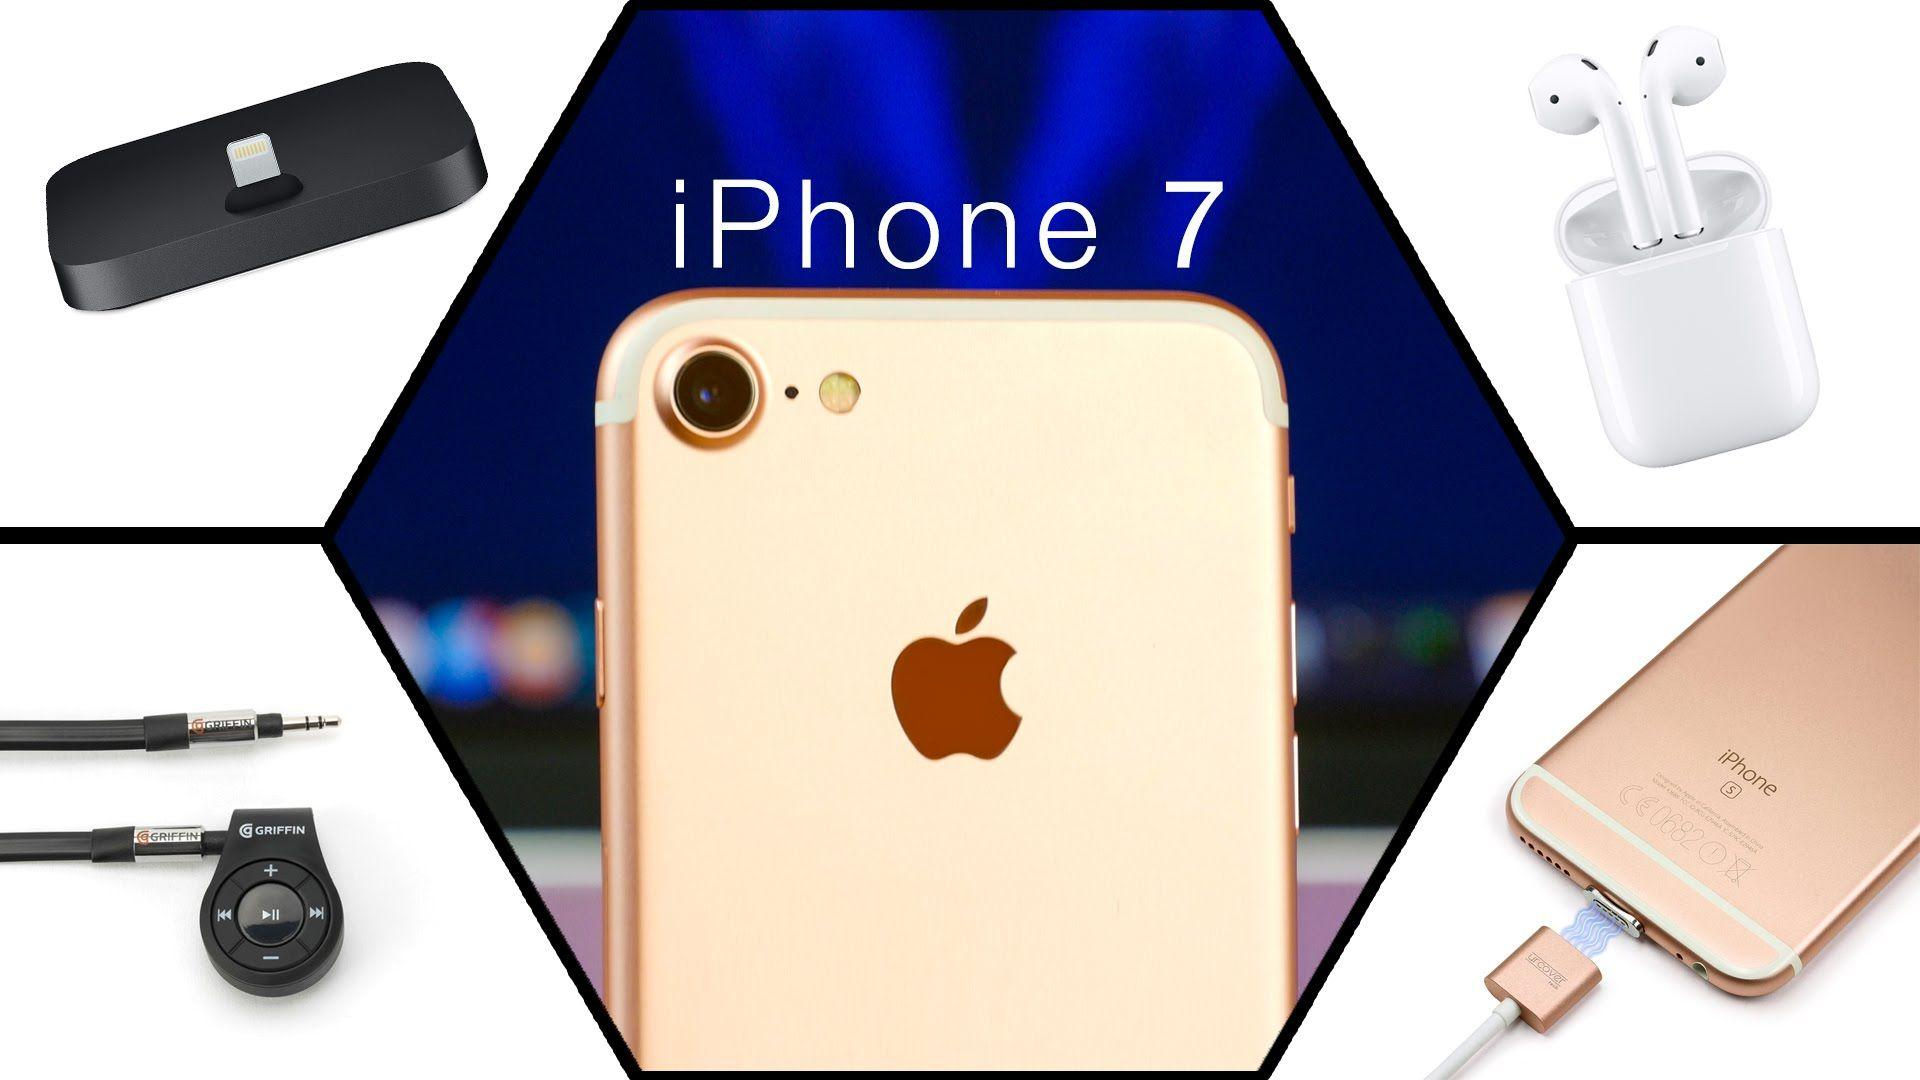 I migliori accessori per iPhone 7